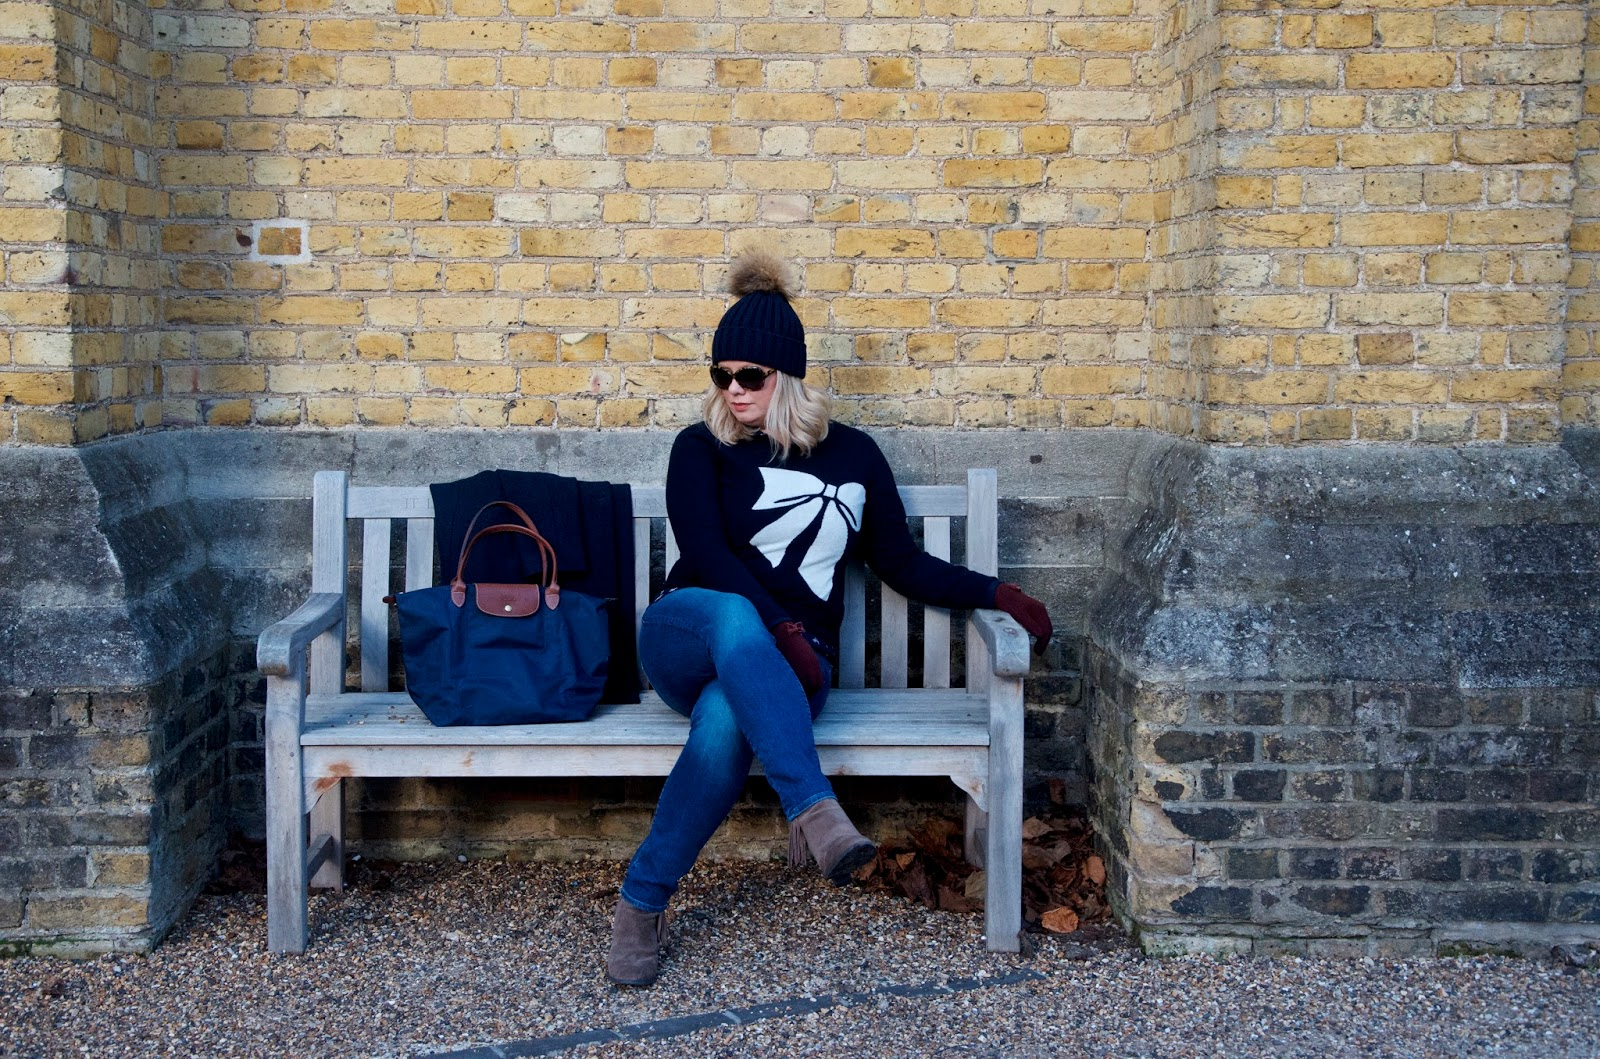 Bow sweater, jeans, boots and hat on park bench